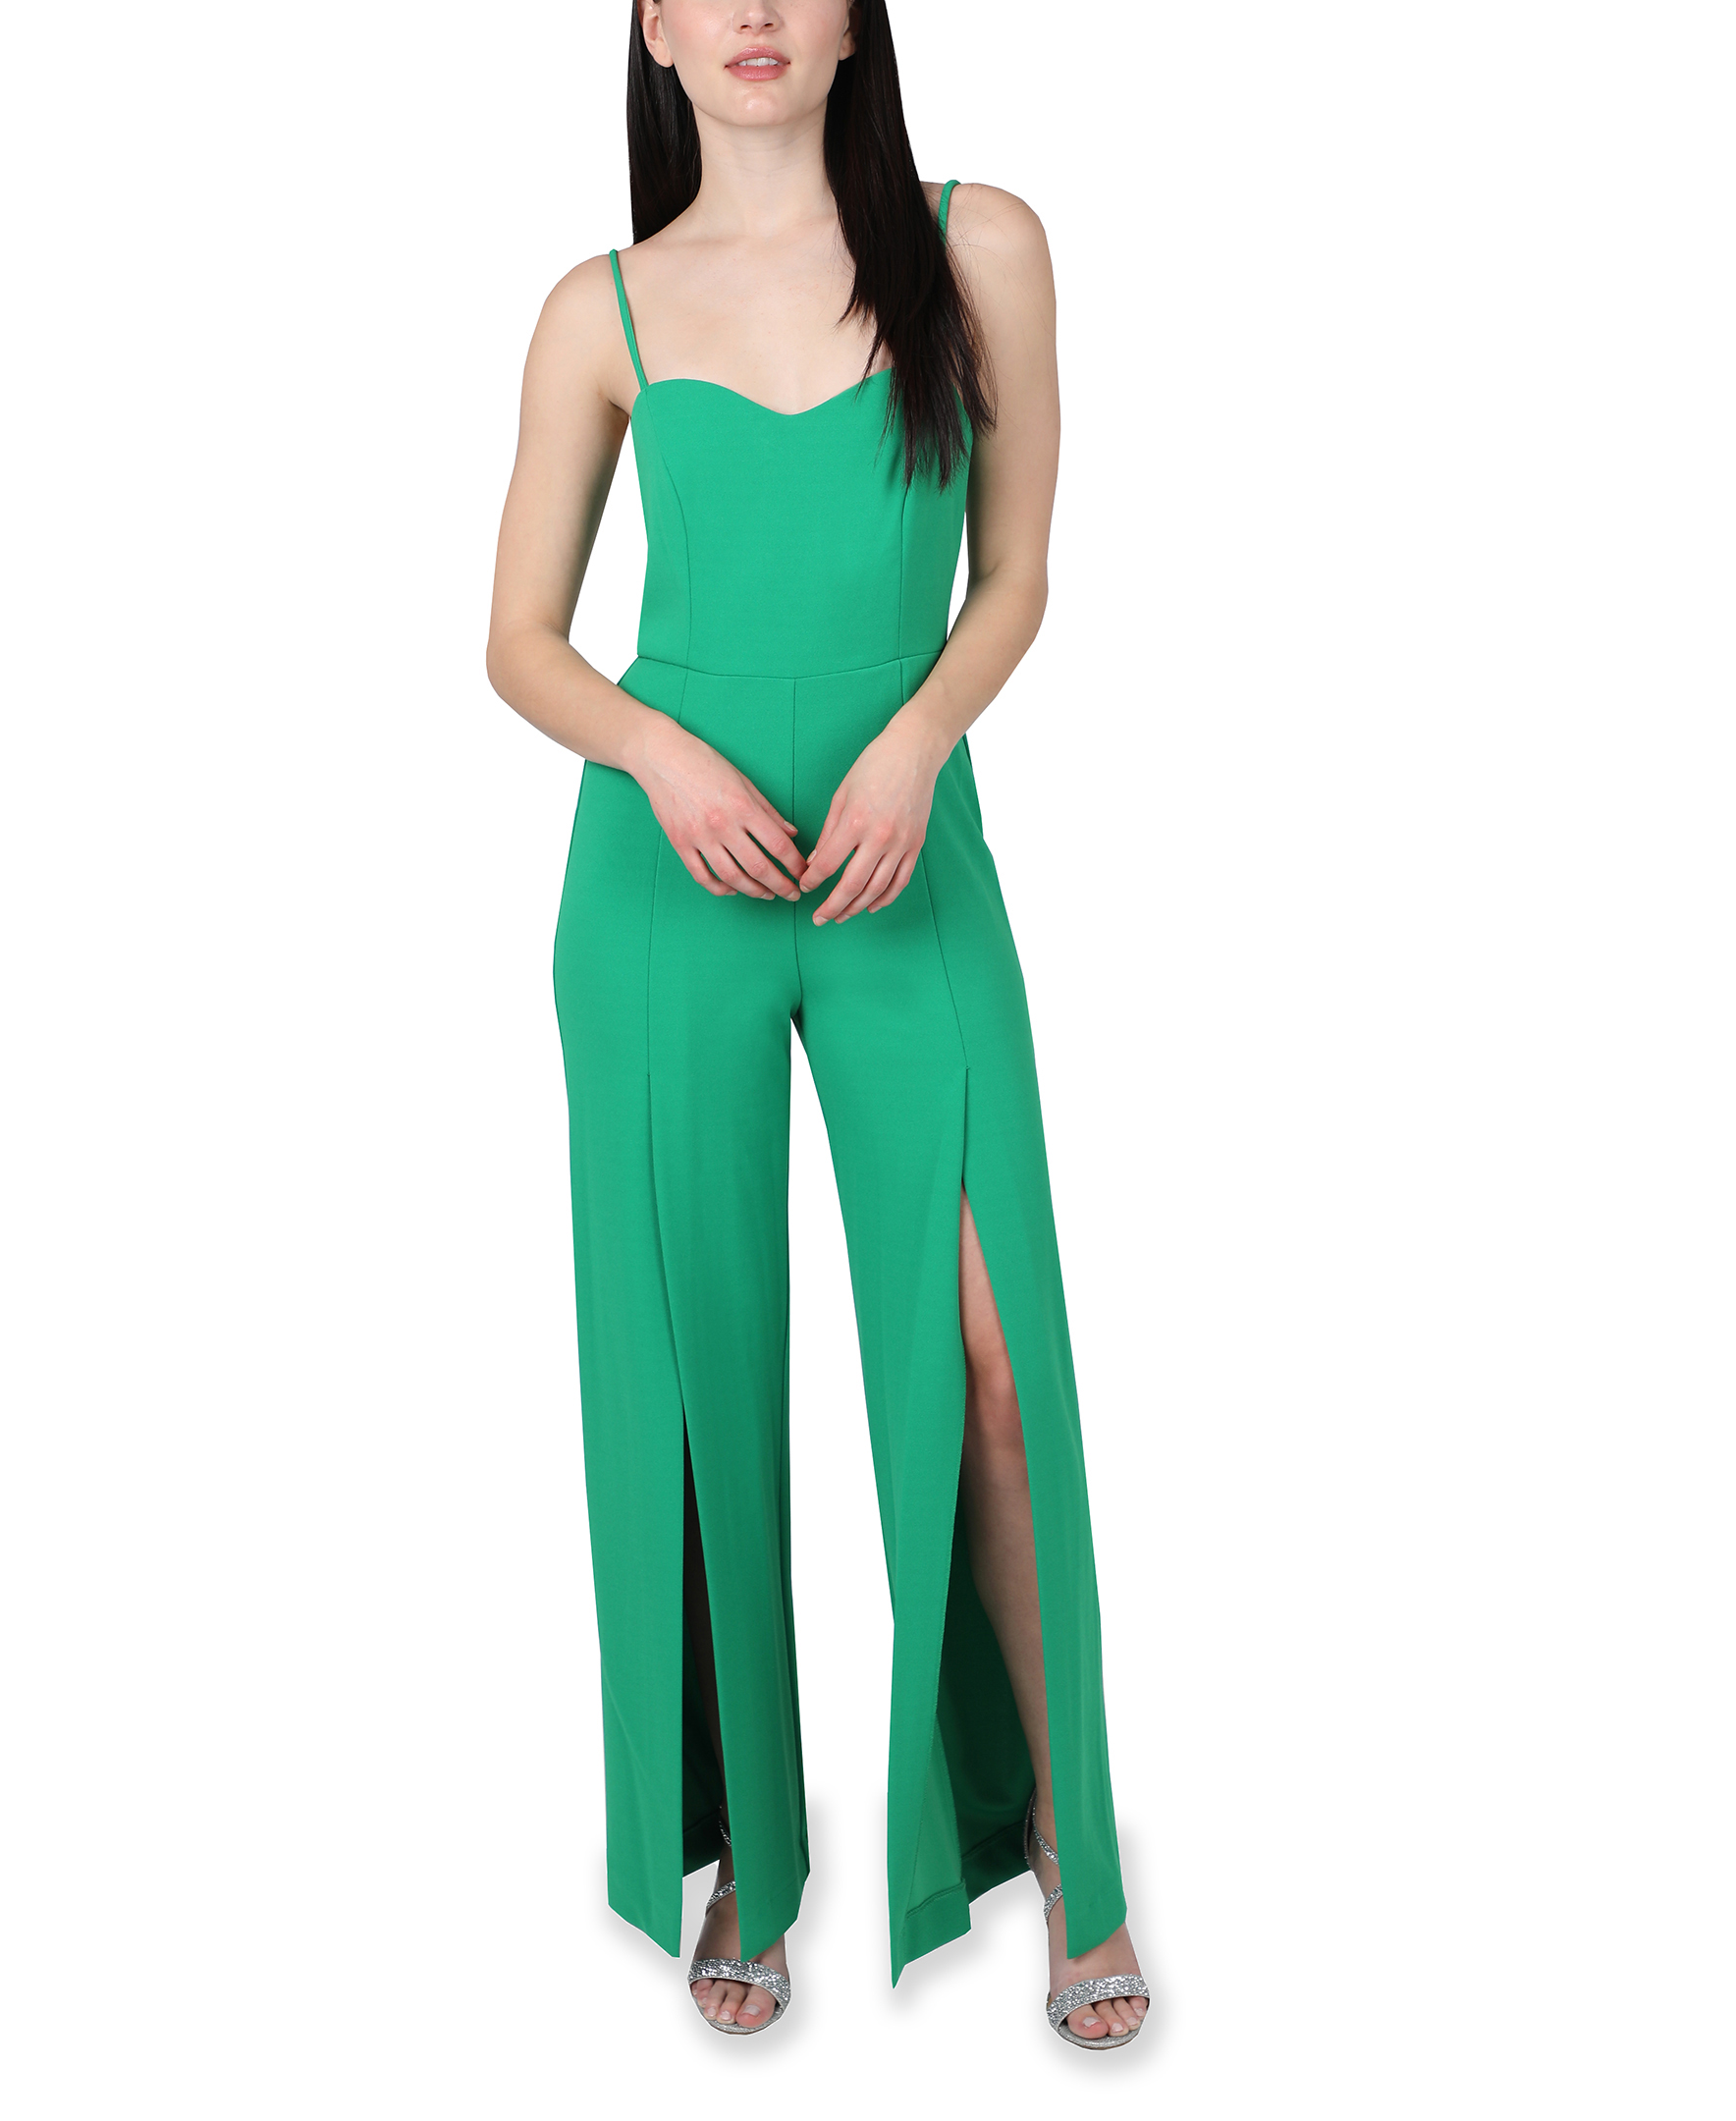 Bebe Open Leg Jumpsuit -green - Front